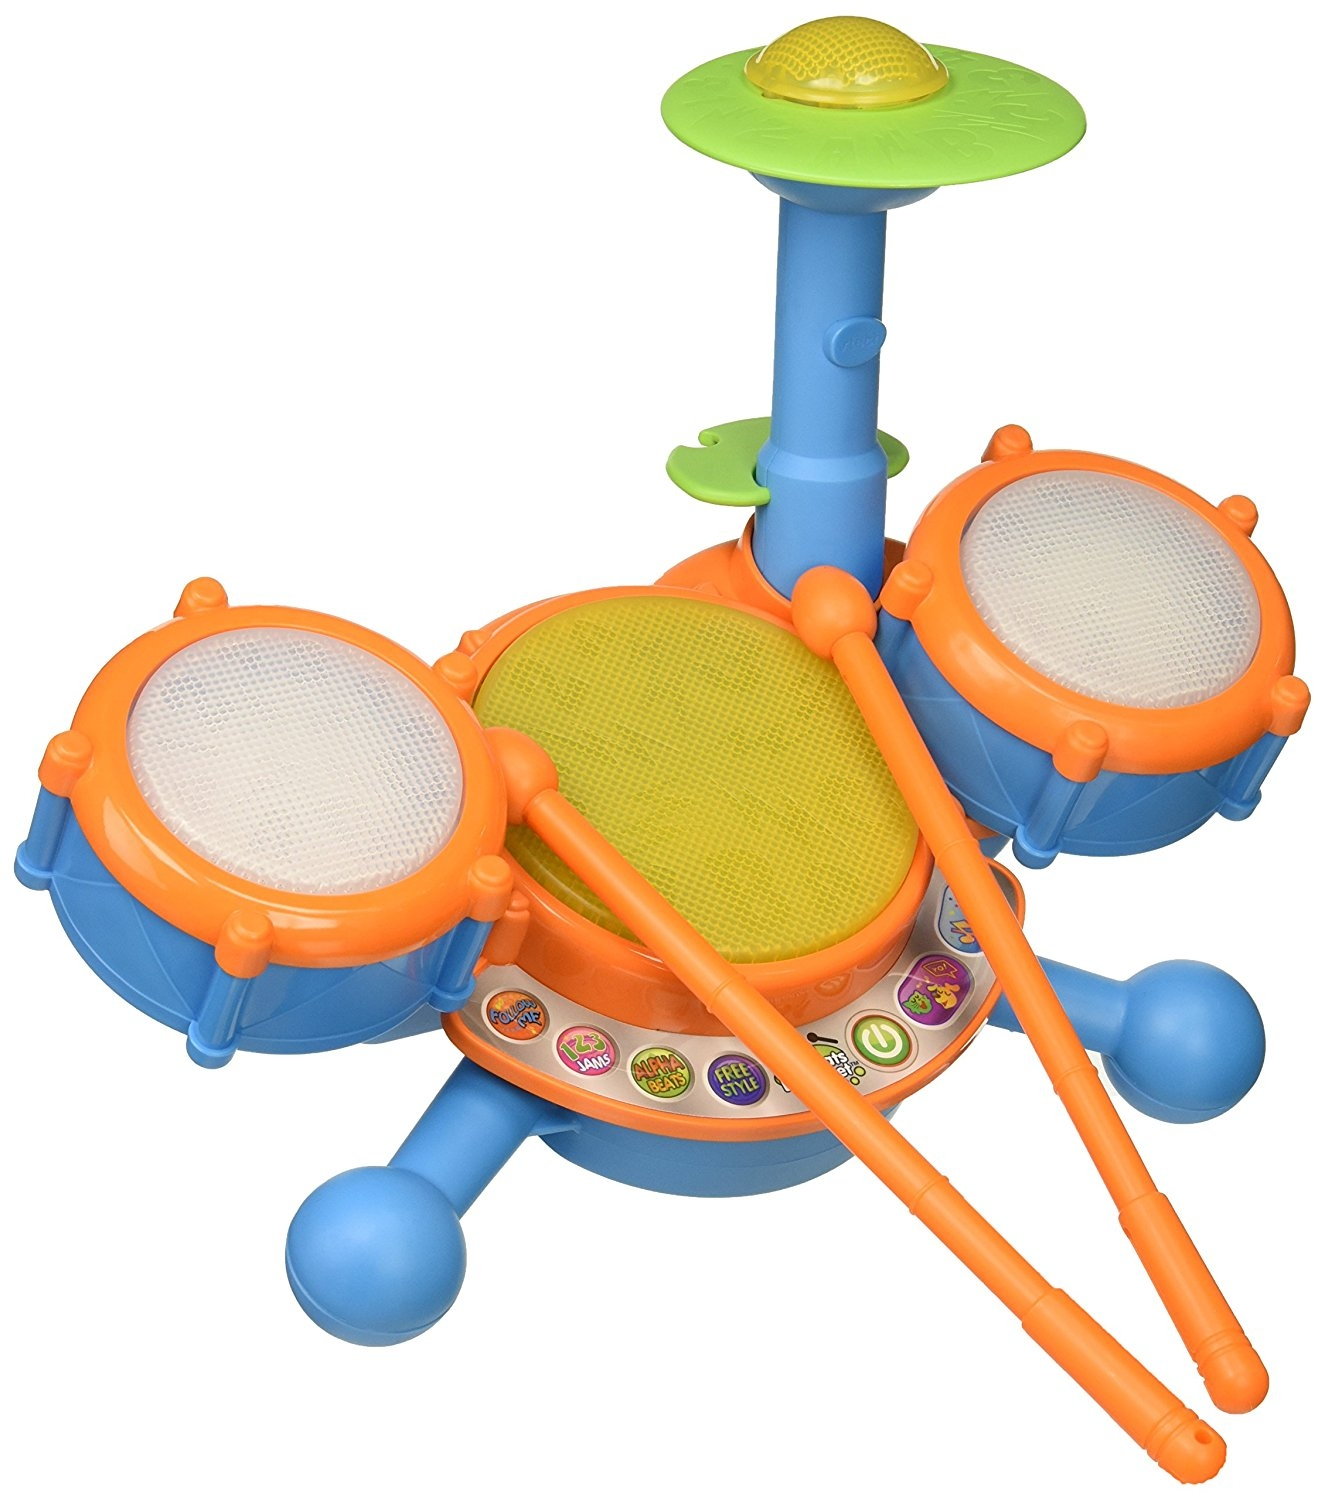 Drum Toy For 1 Year Olds : Vtech kidibeats drum set best offer